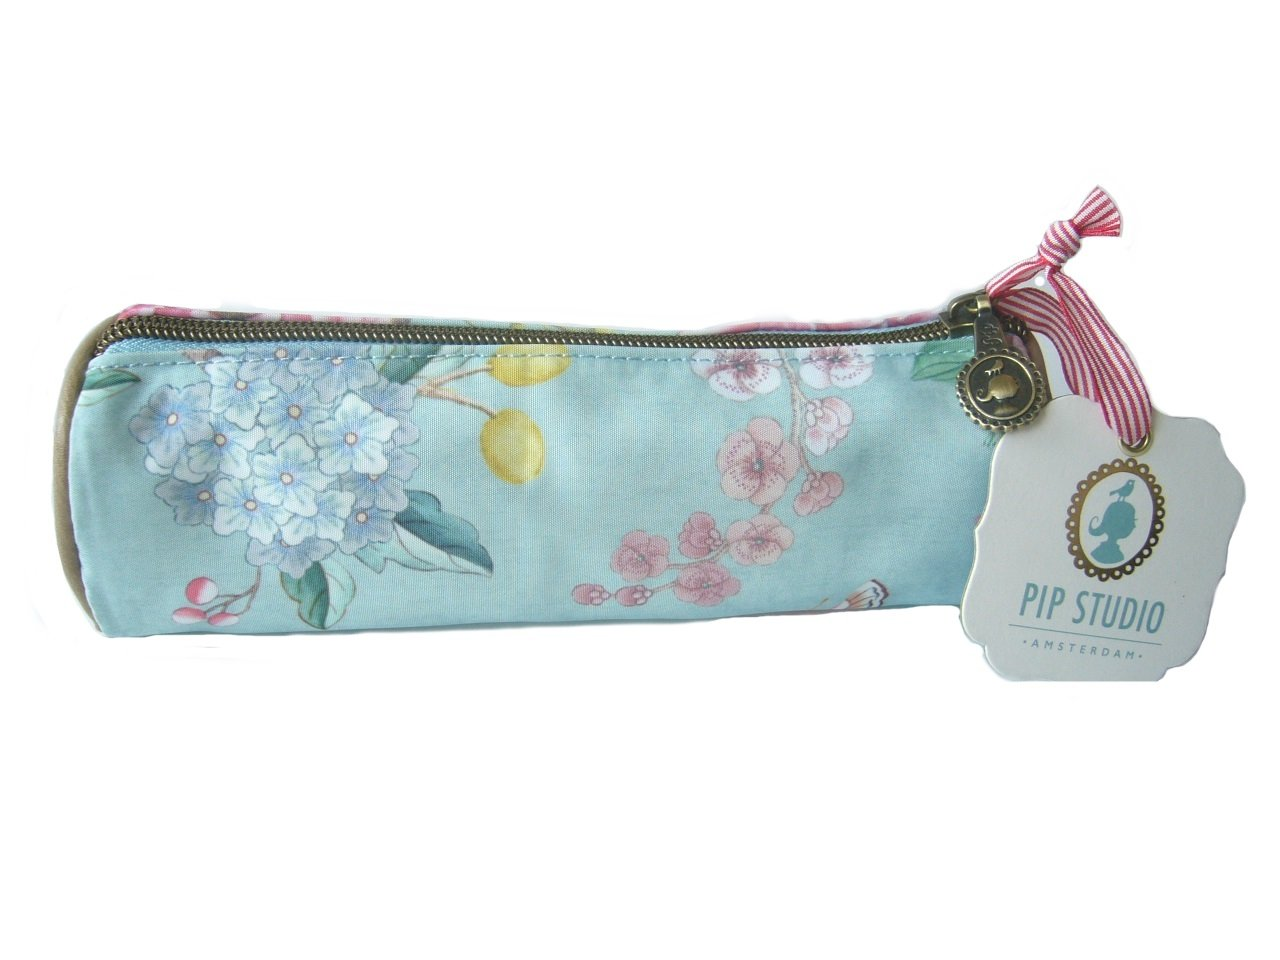 PIP STUDIO - Cosmetic Etui - Good Morning Kollektion - Blau - Satin - NEU